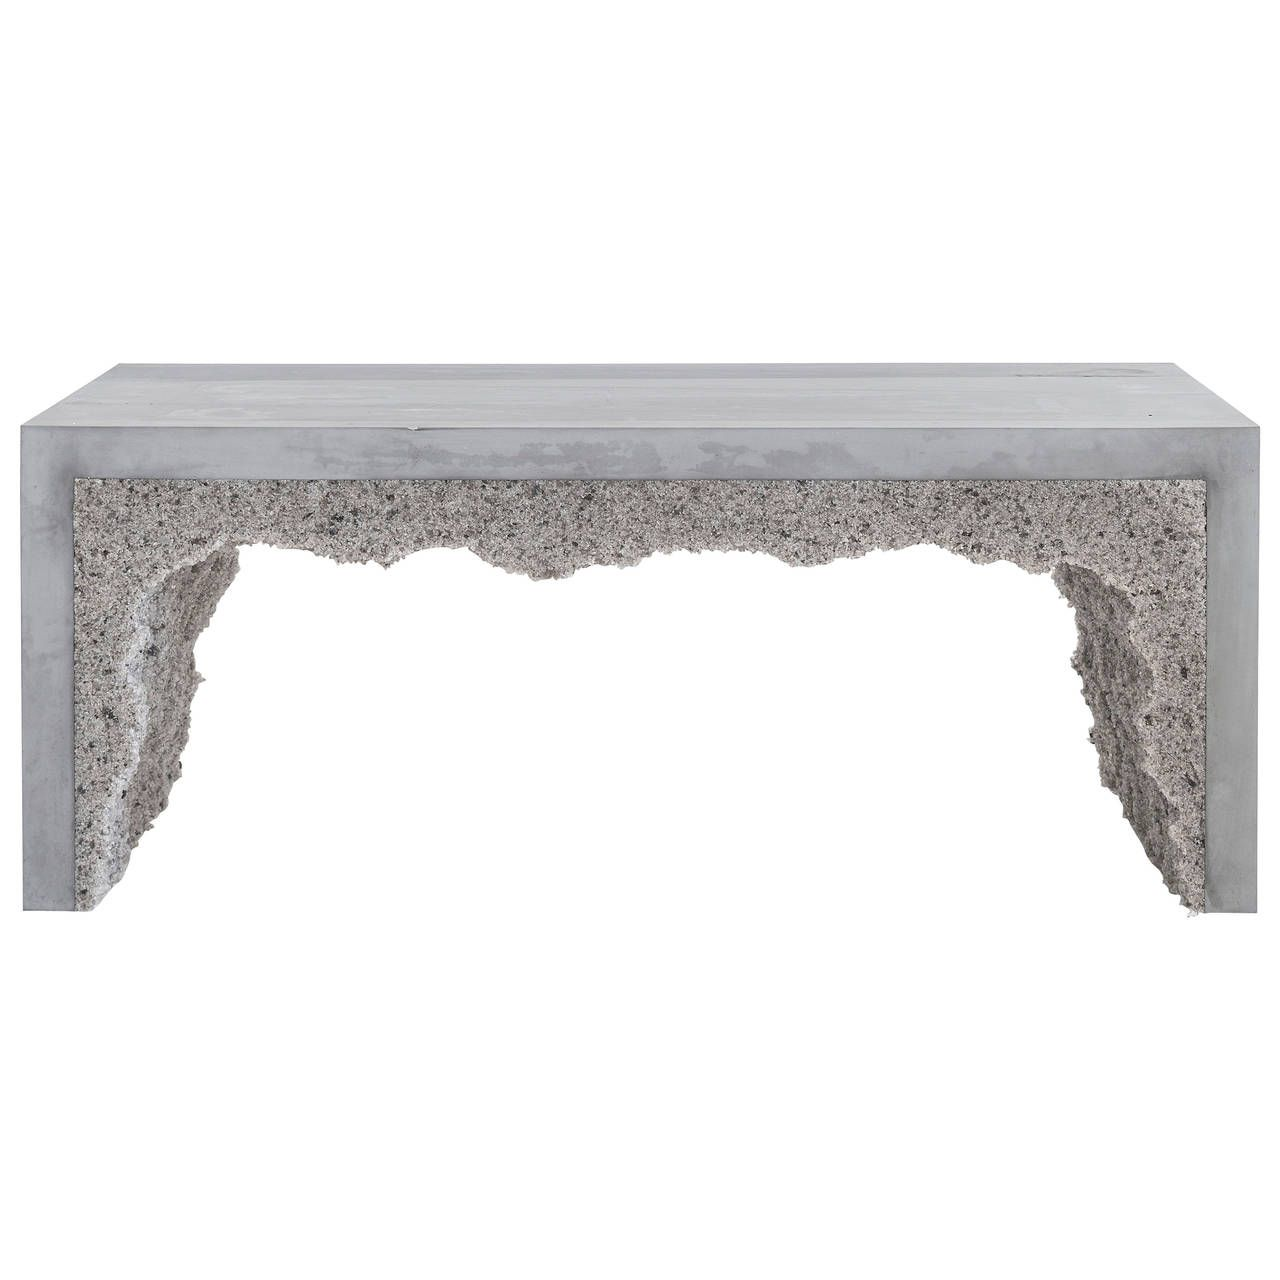 Grey Cement and Grey Rock Salt Bench 1